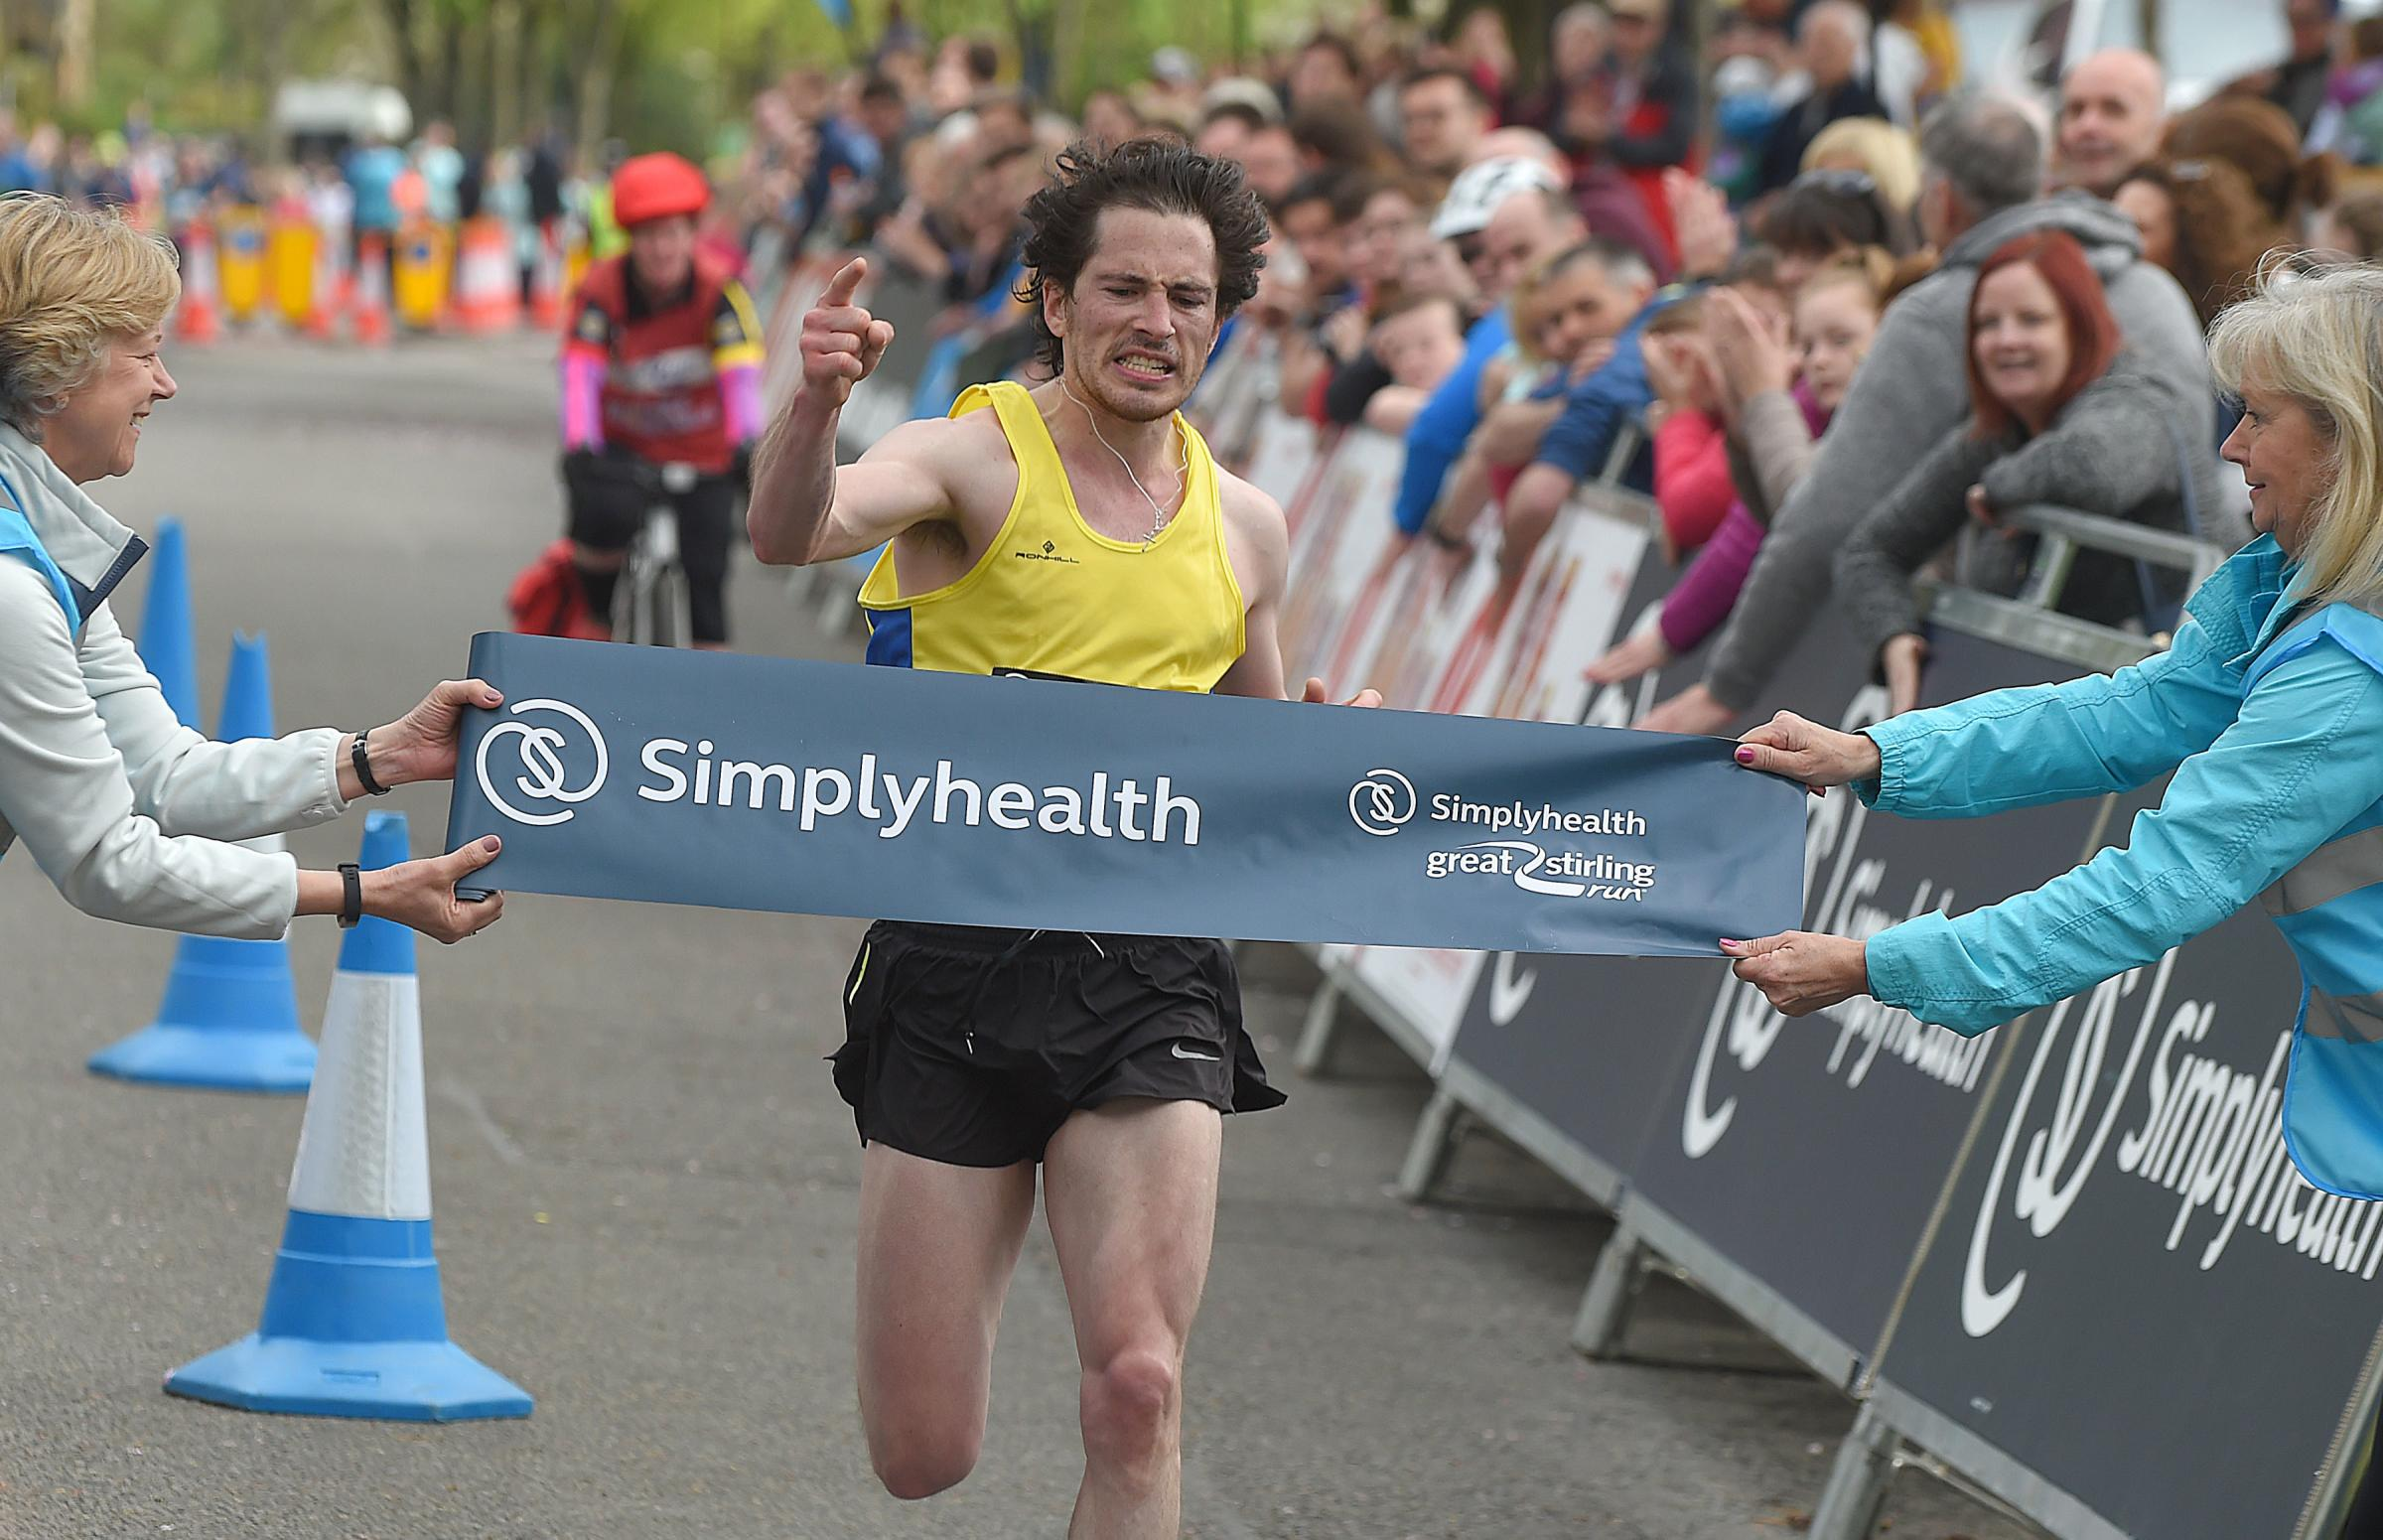 Stirling Marathon was won by two local people during a successful event.Photography by Whyler Photos of Stirling